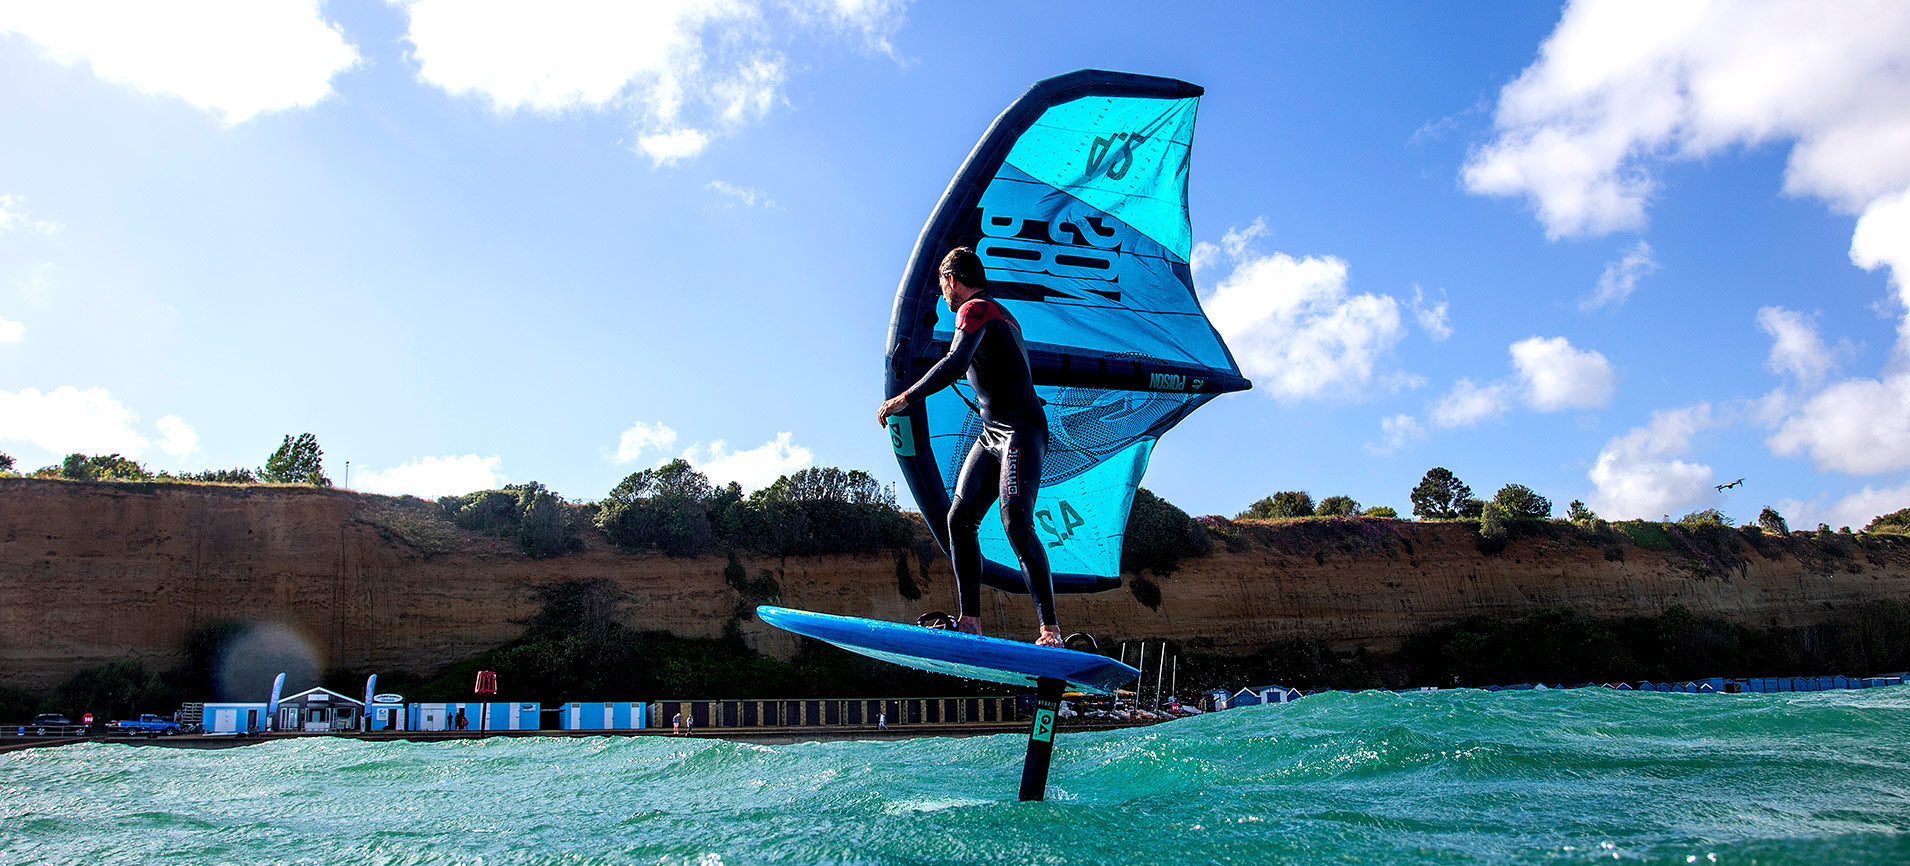 Gaastra Poison Wing Surf Action